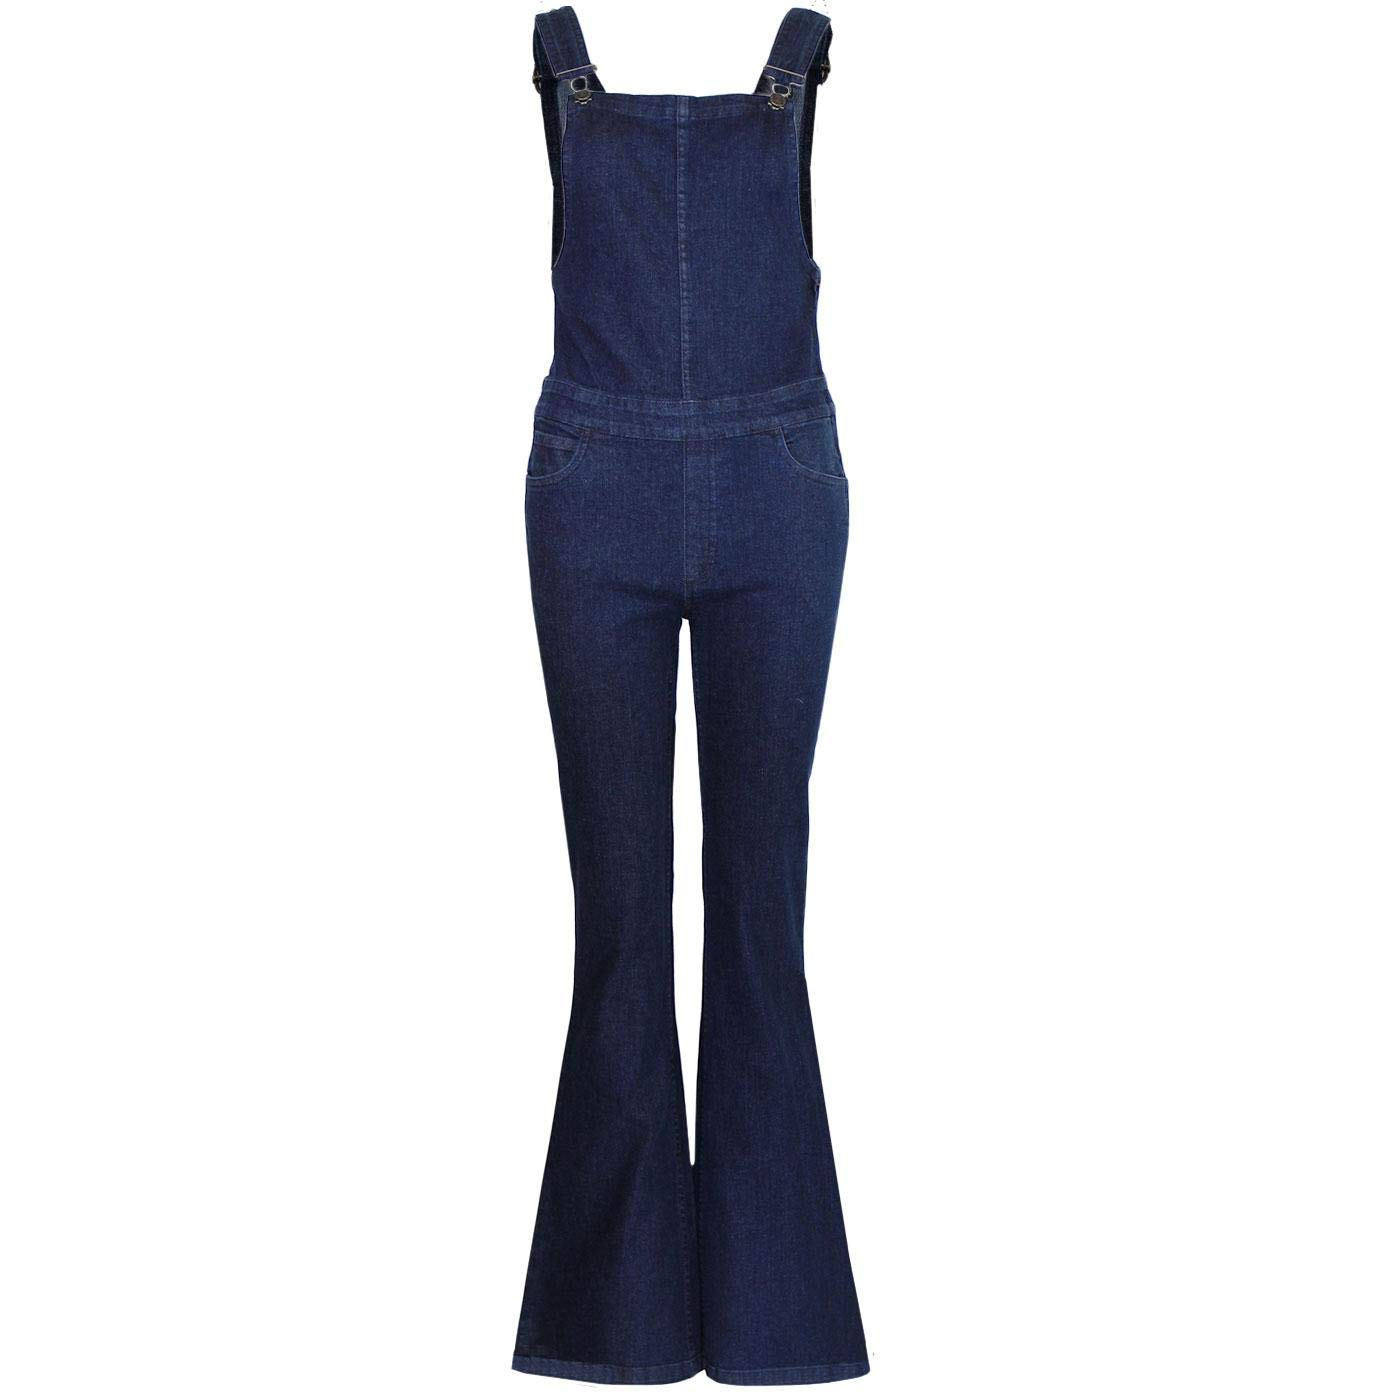 70s Jumpsuit | Disco Jumpsuits – Sequin, Striped, Gold, White, Black Madcap England Womens Bellbottom Blues Flared Denim Dungaree Flares £39.99 AT vintagedancer.com